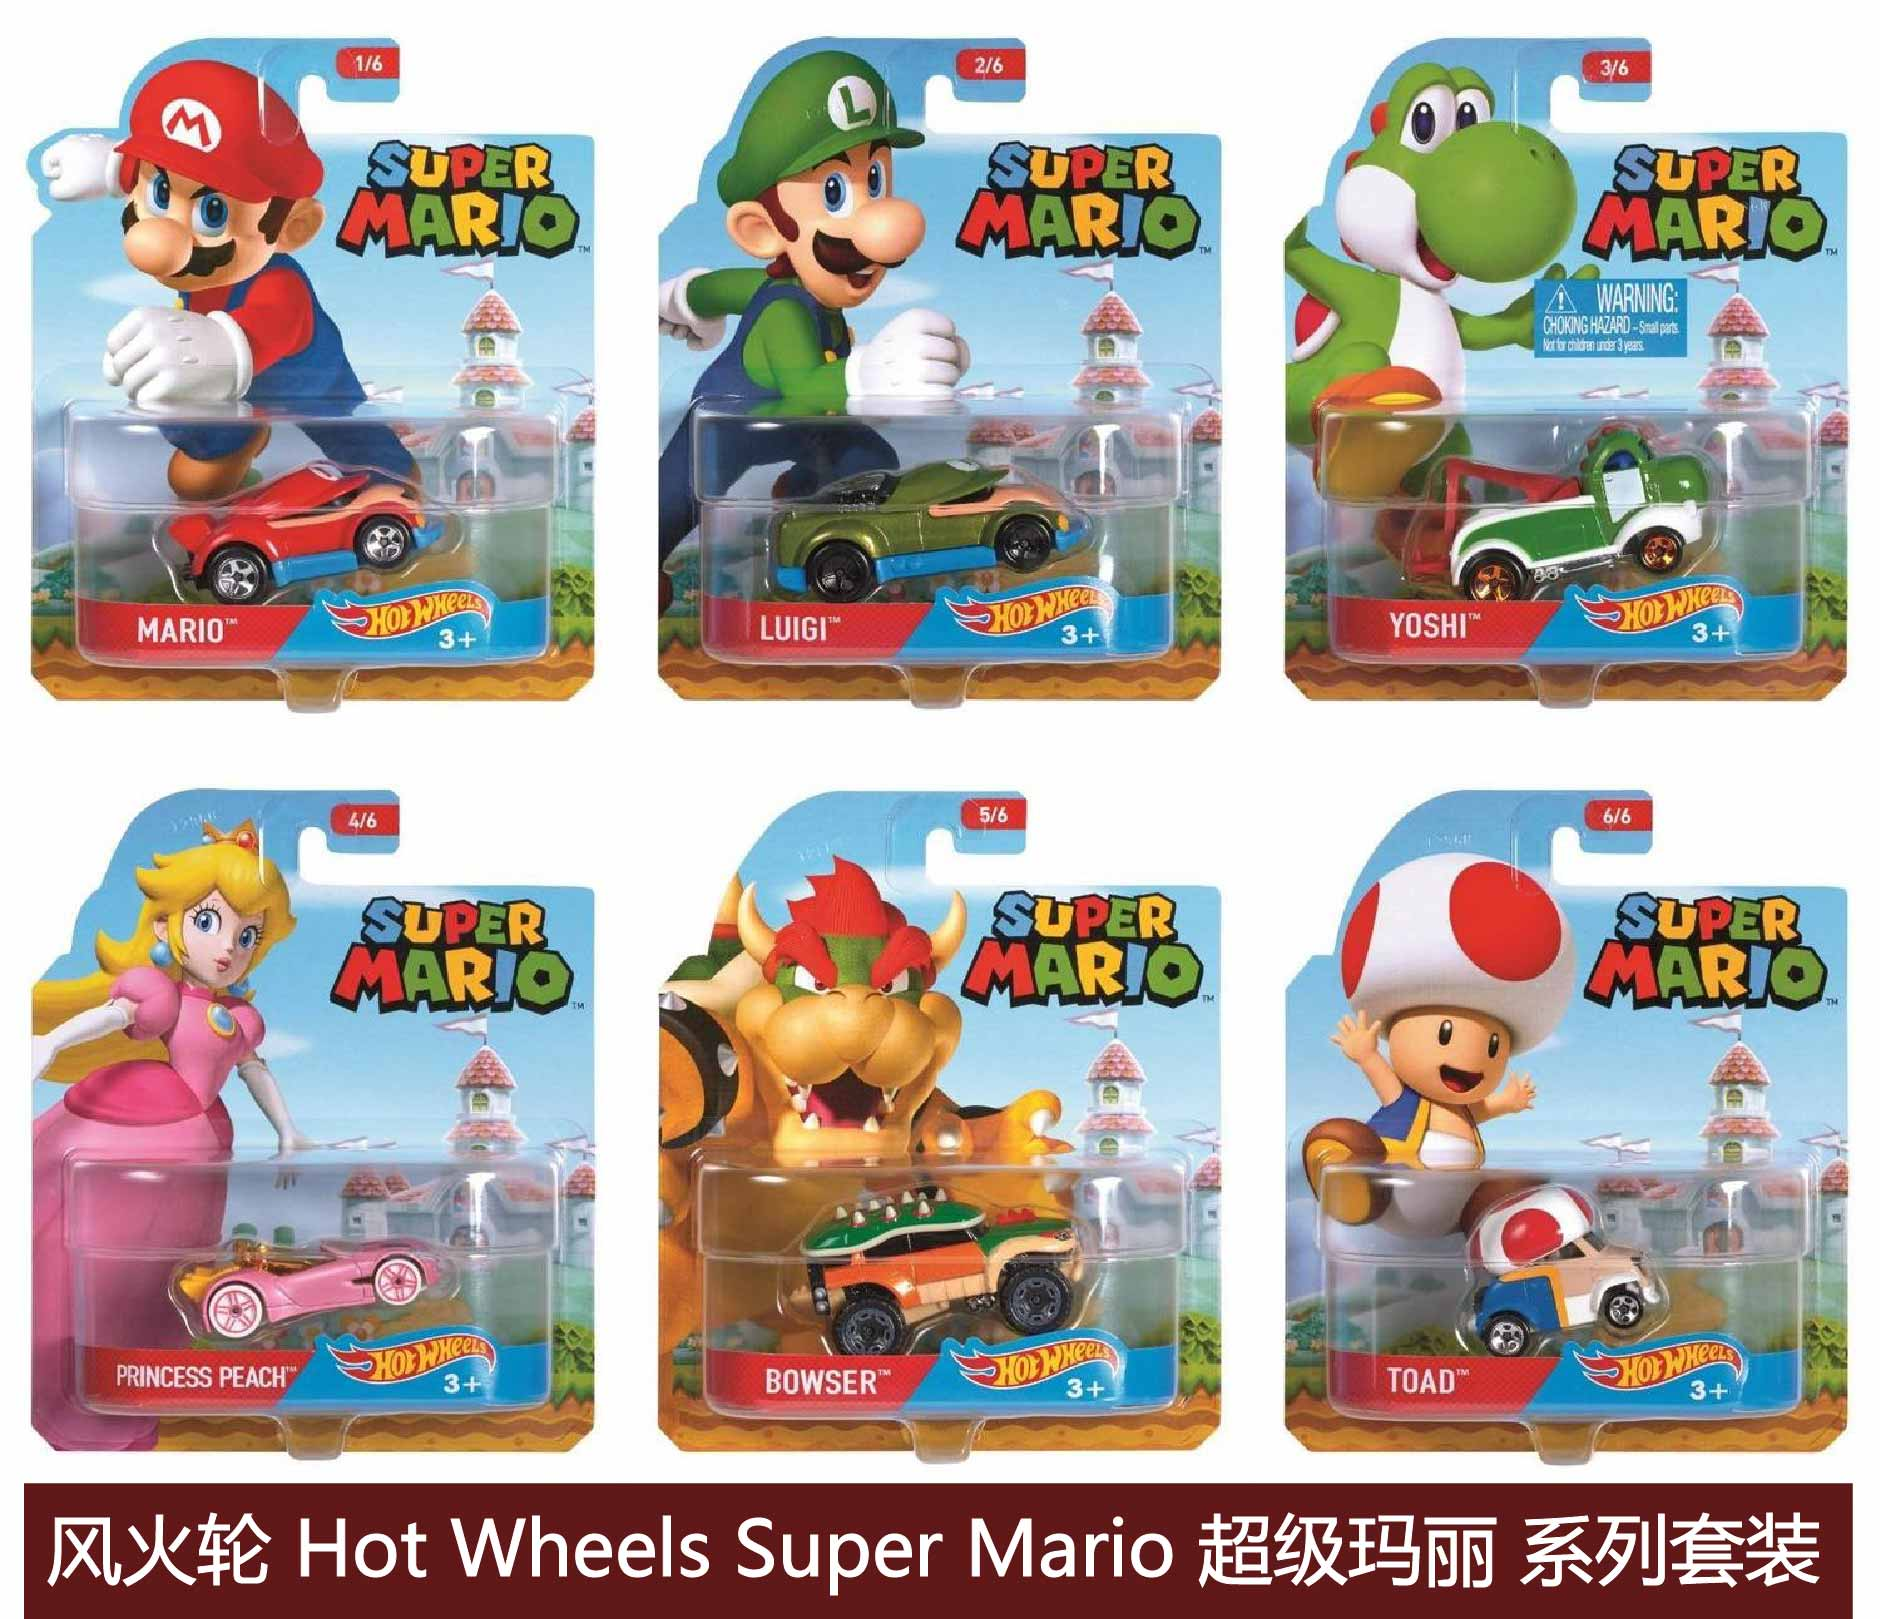 HotWheels BOWSER – Tremendous Mario Die-casts mannequin vehicles